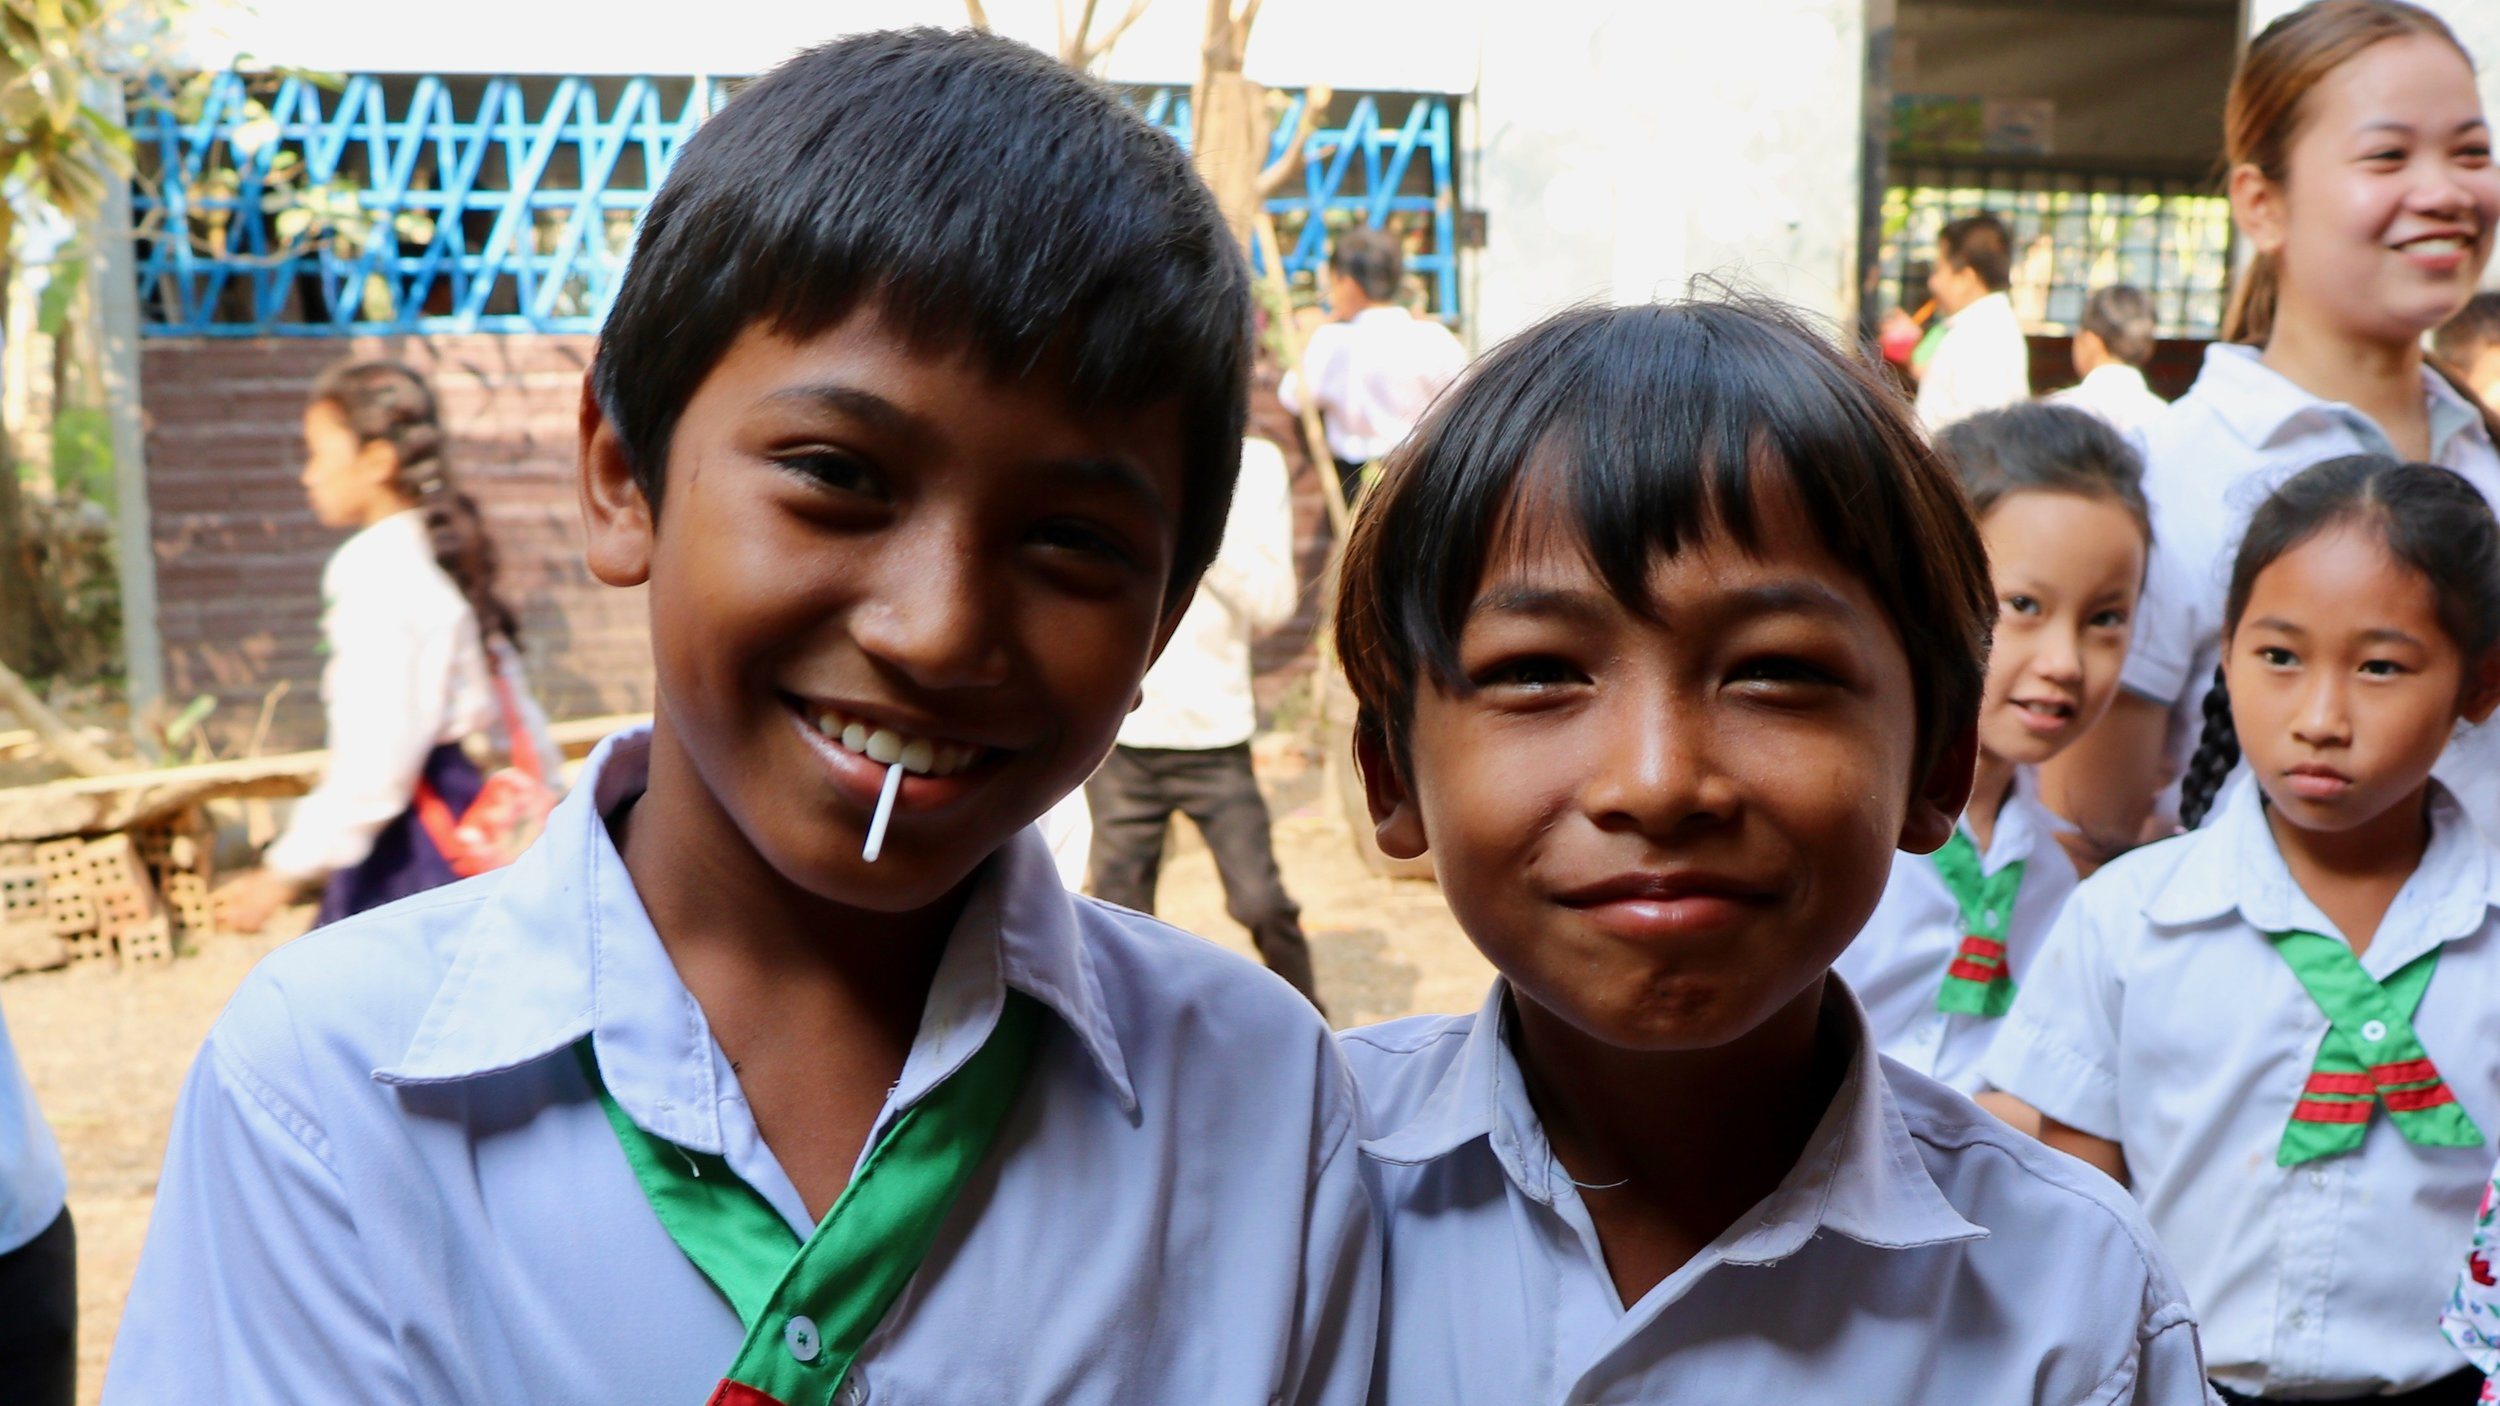 Cambodia - We have partnered with New Hope School to serve 204 students.